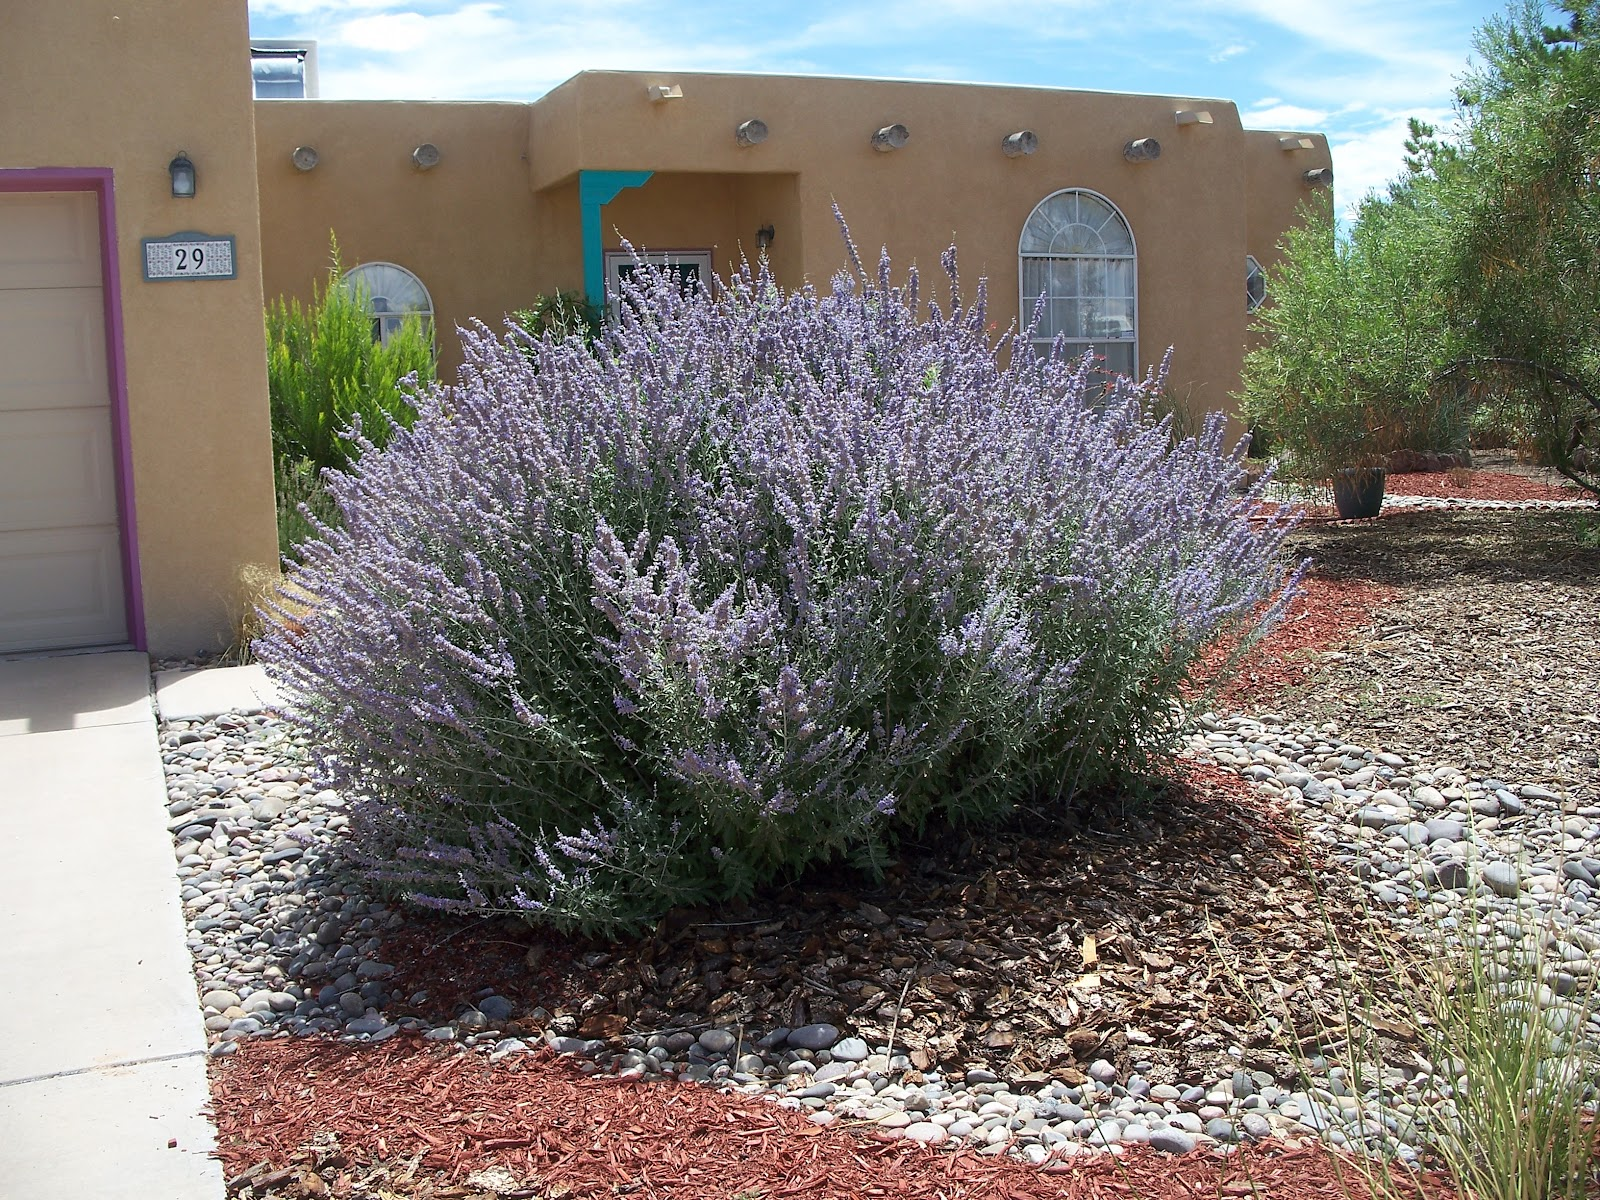 Landscaping With Russian Sage Trees That Please Nurs...